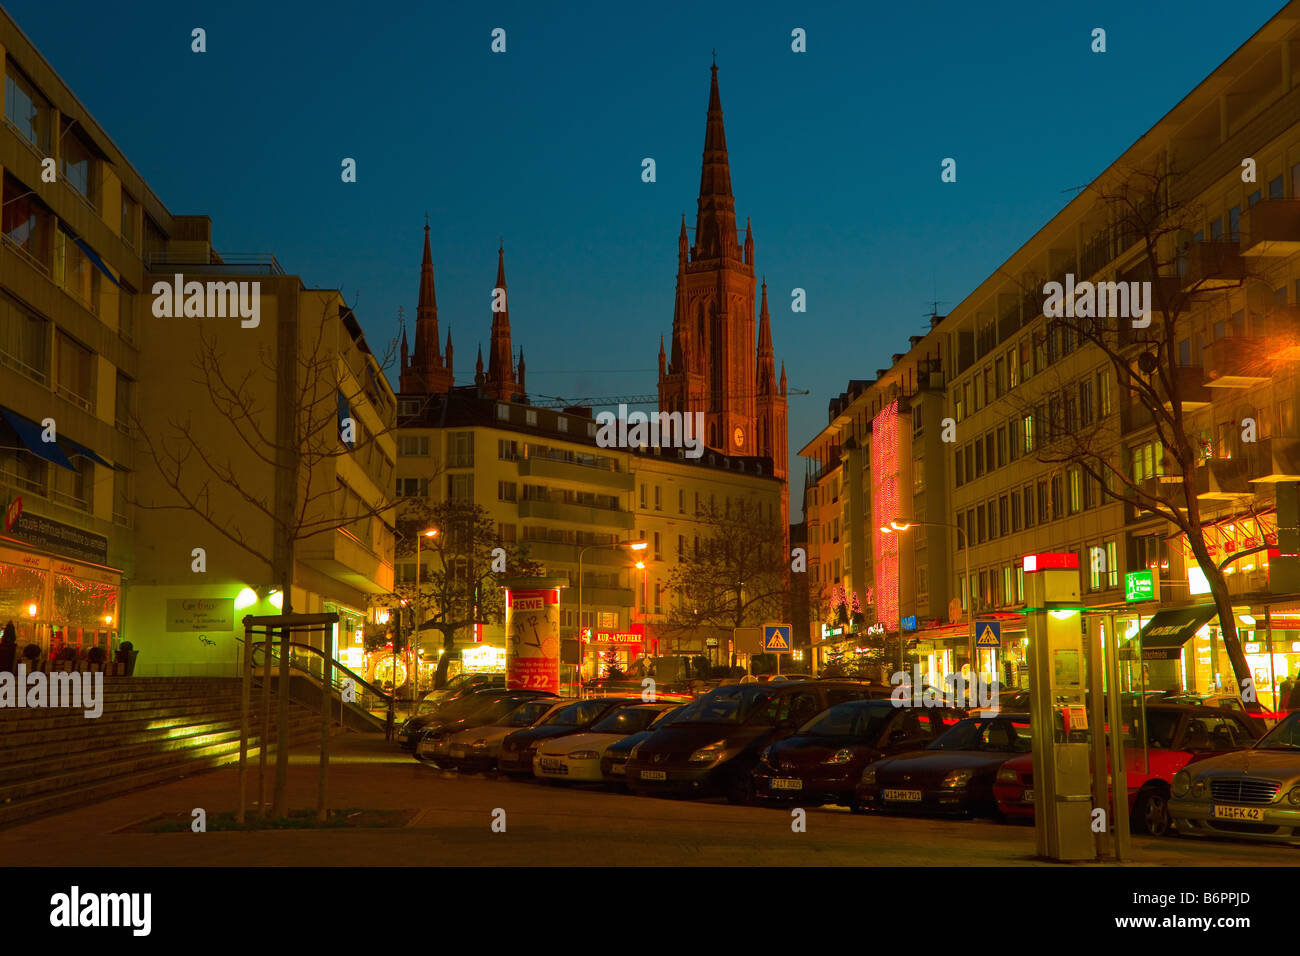 Marktkirche church in Wiesbaden's city center in the blue hour - Stock Image